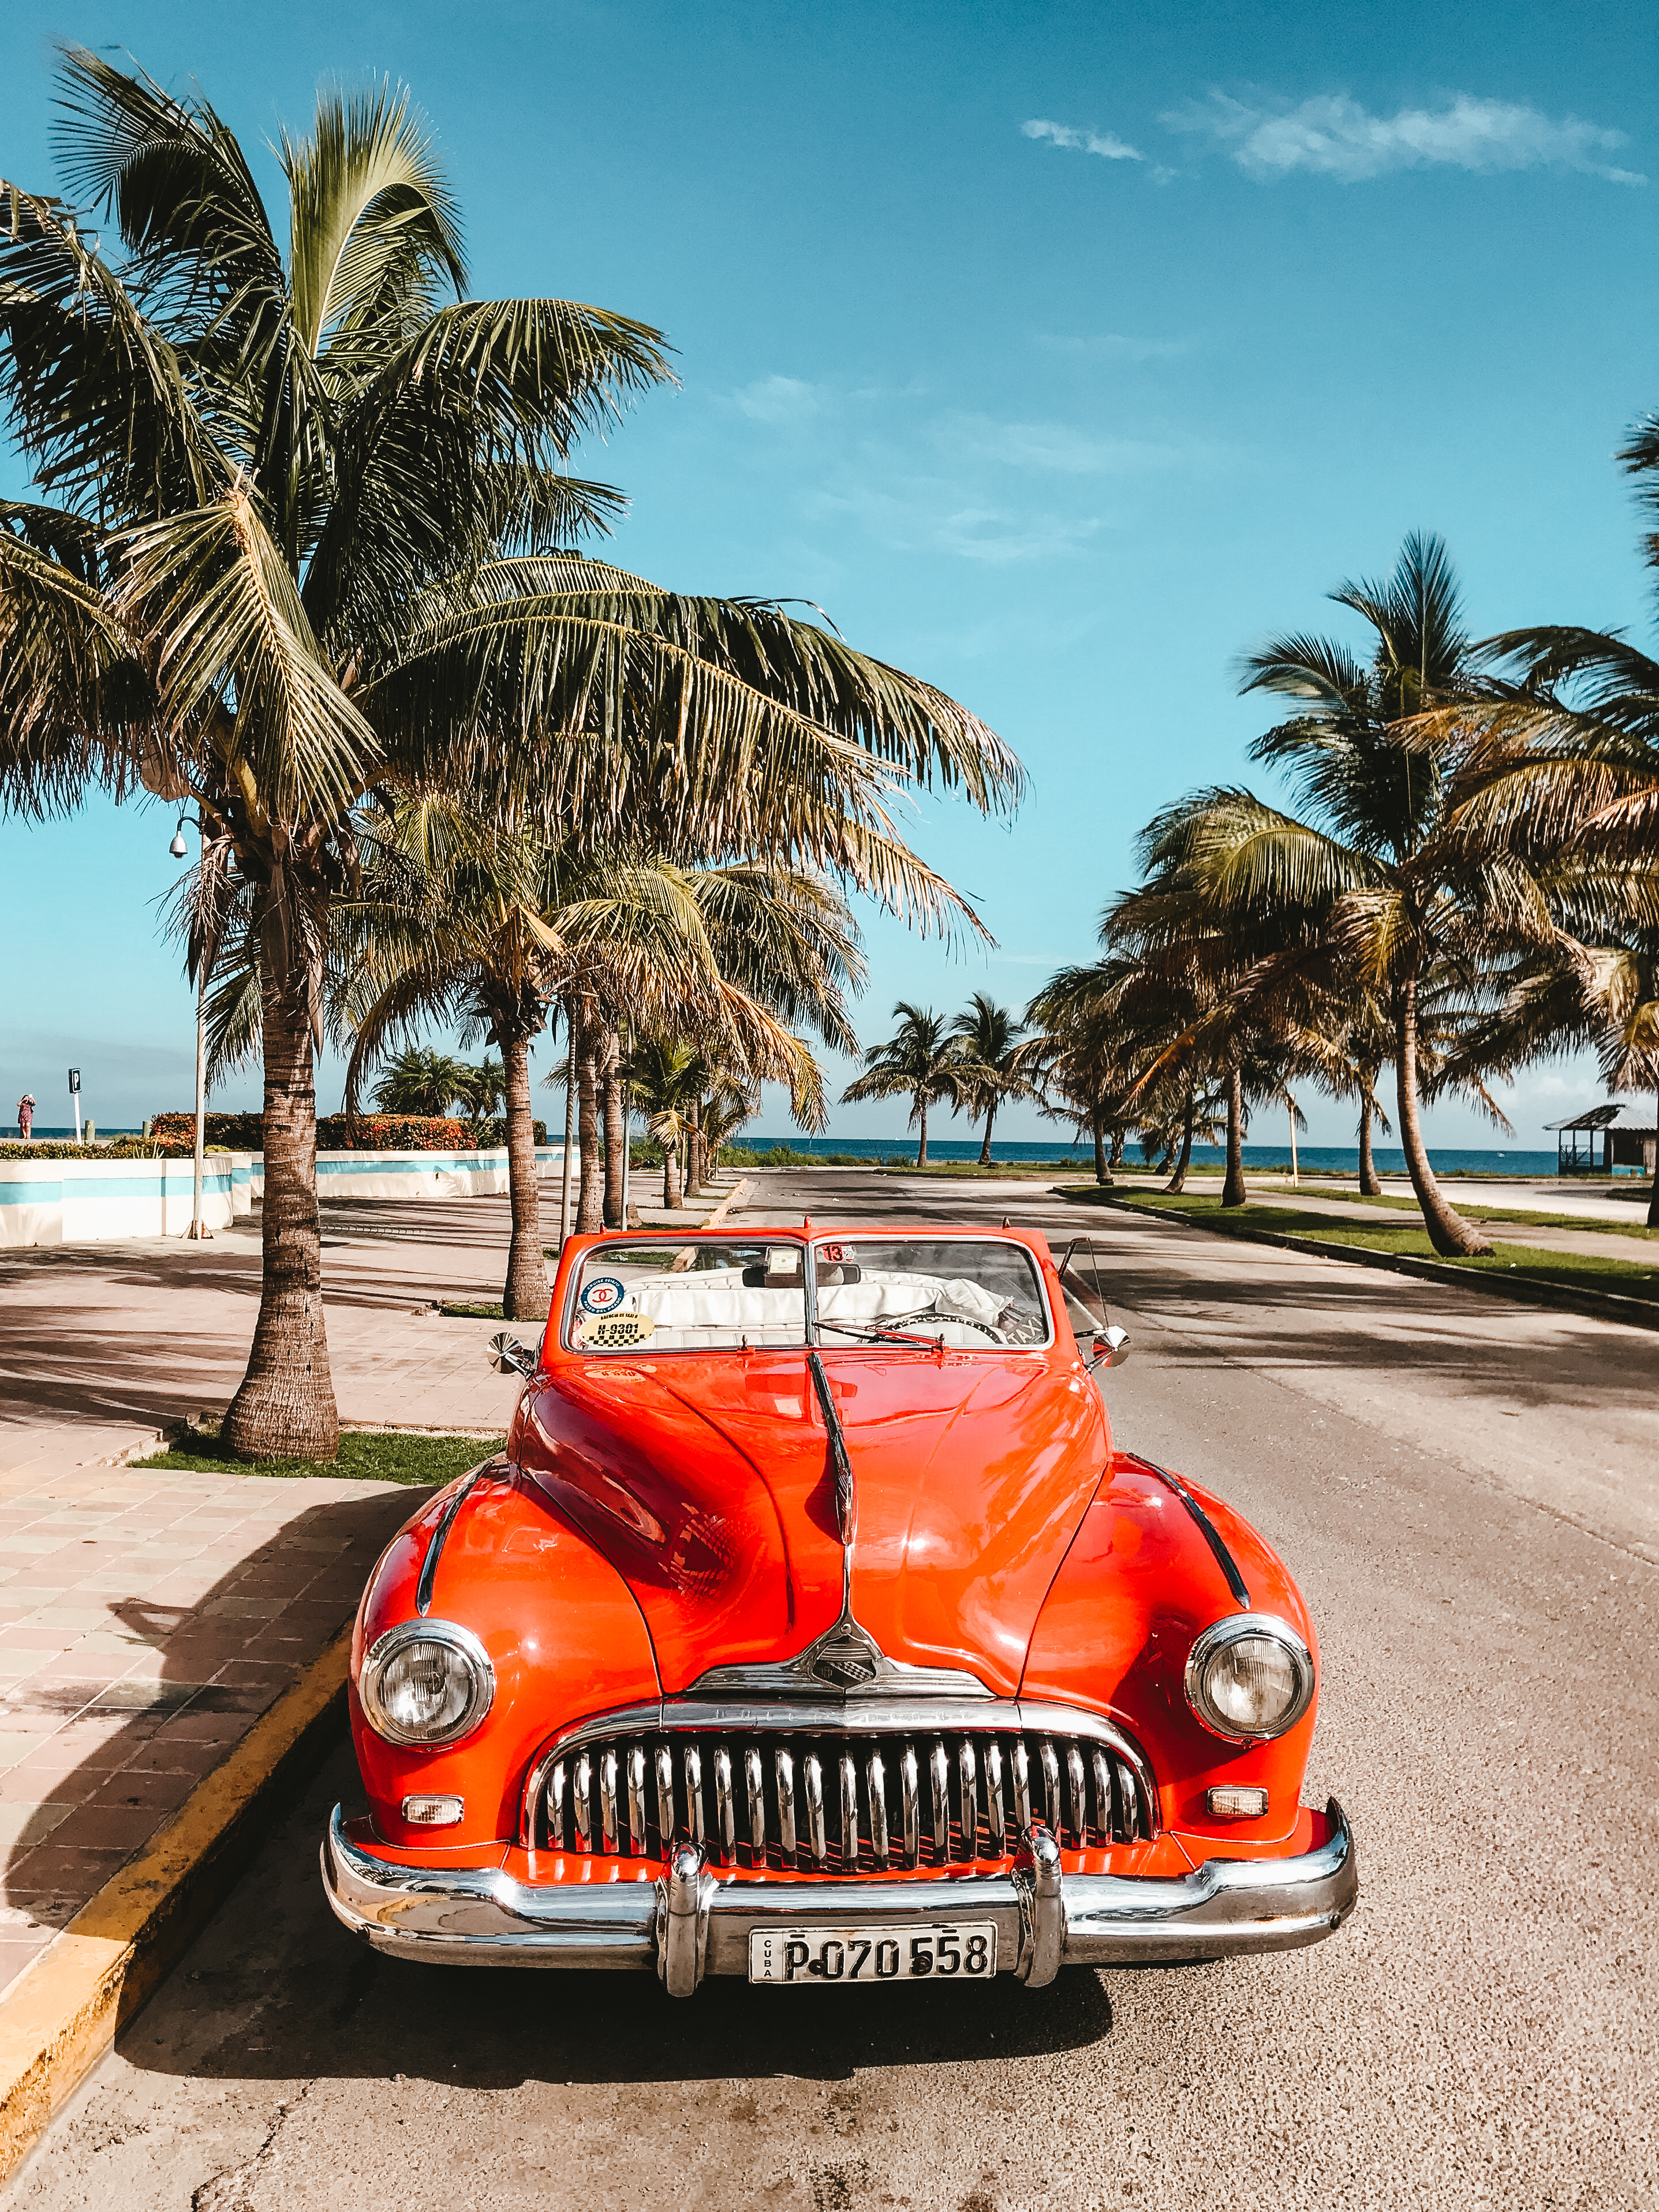 Desktop Corvett Car Wallpaper 100 Old Car Pictures Download Free Images On Unsplash